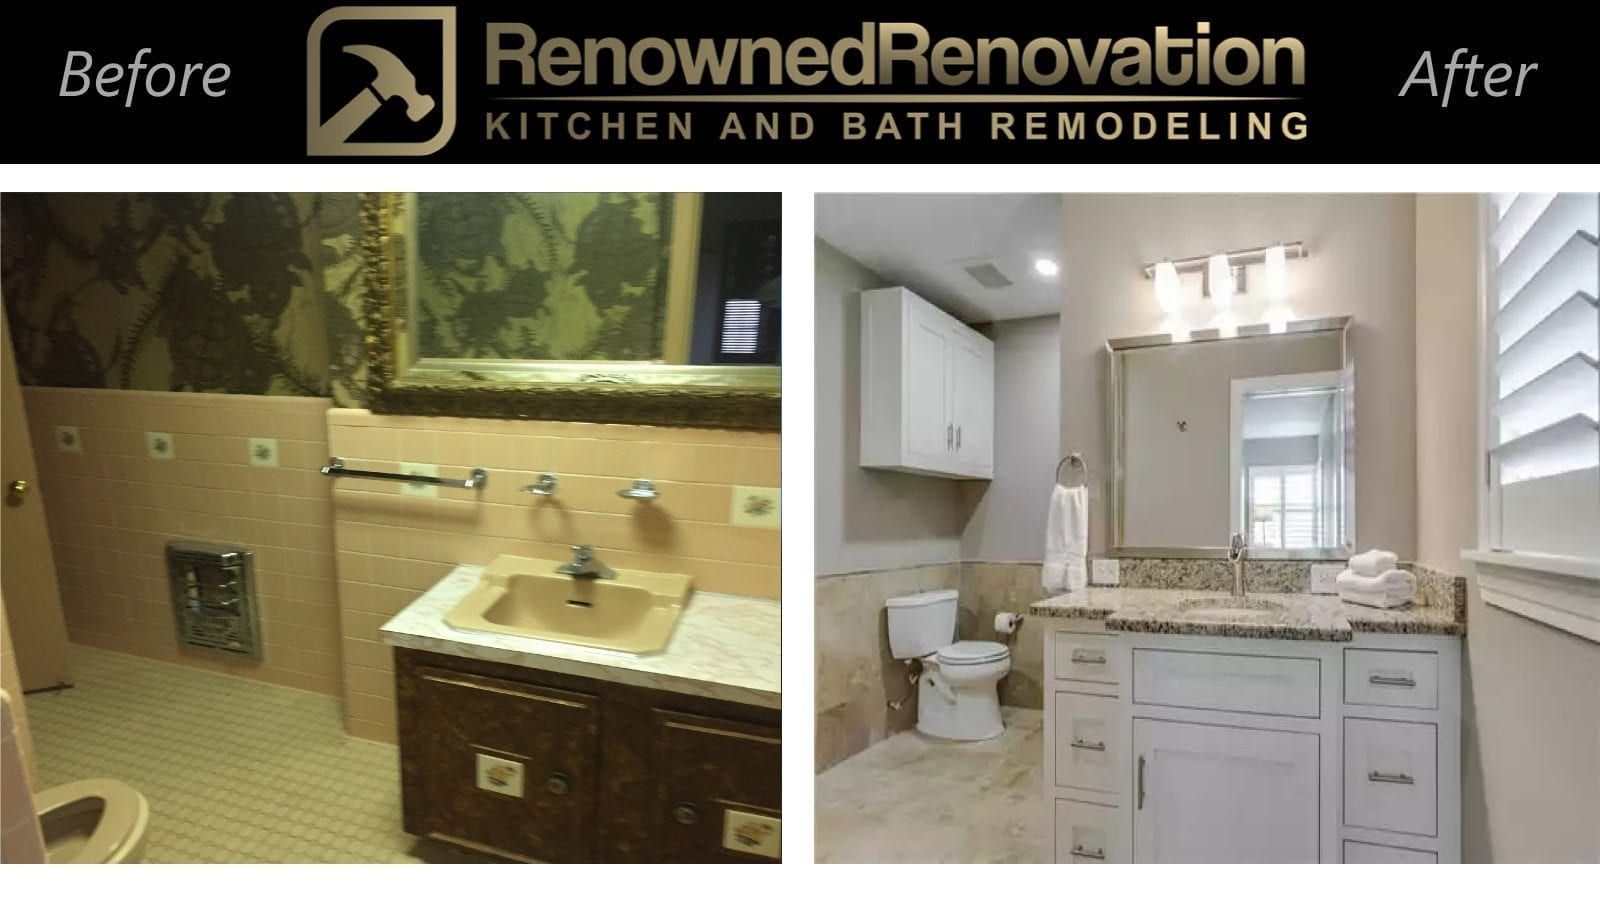 Before and after remodeling pictures renowned renovation for Bath remodel before and after pictures